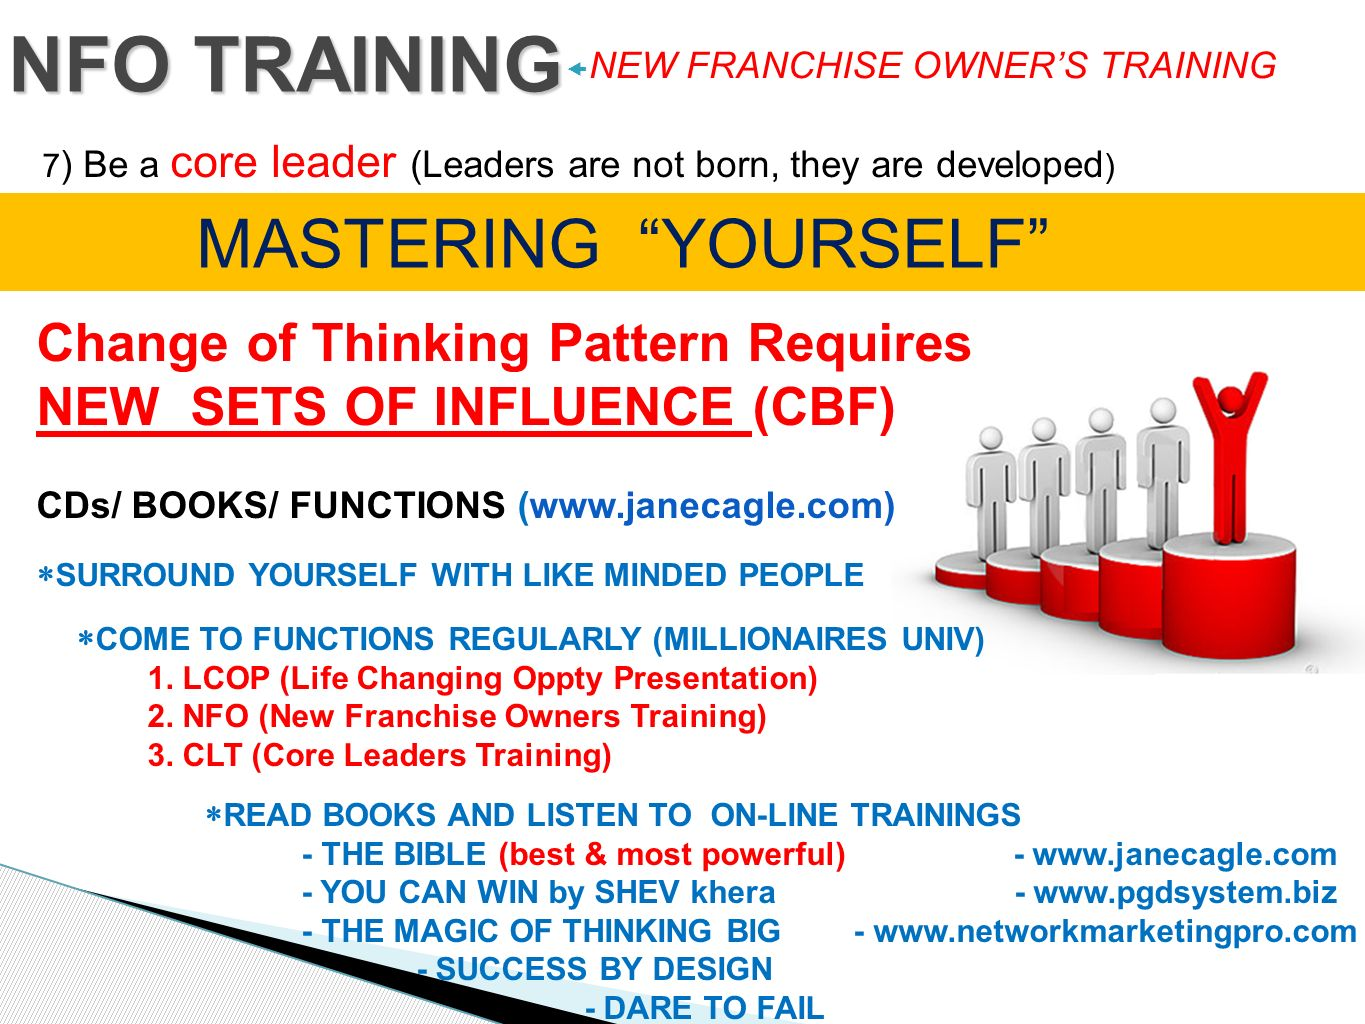 NFO TRAINING MASTERING YOURSELF Change of Thinking Pattern Requires